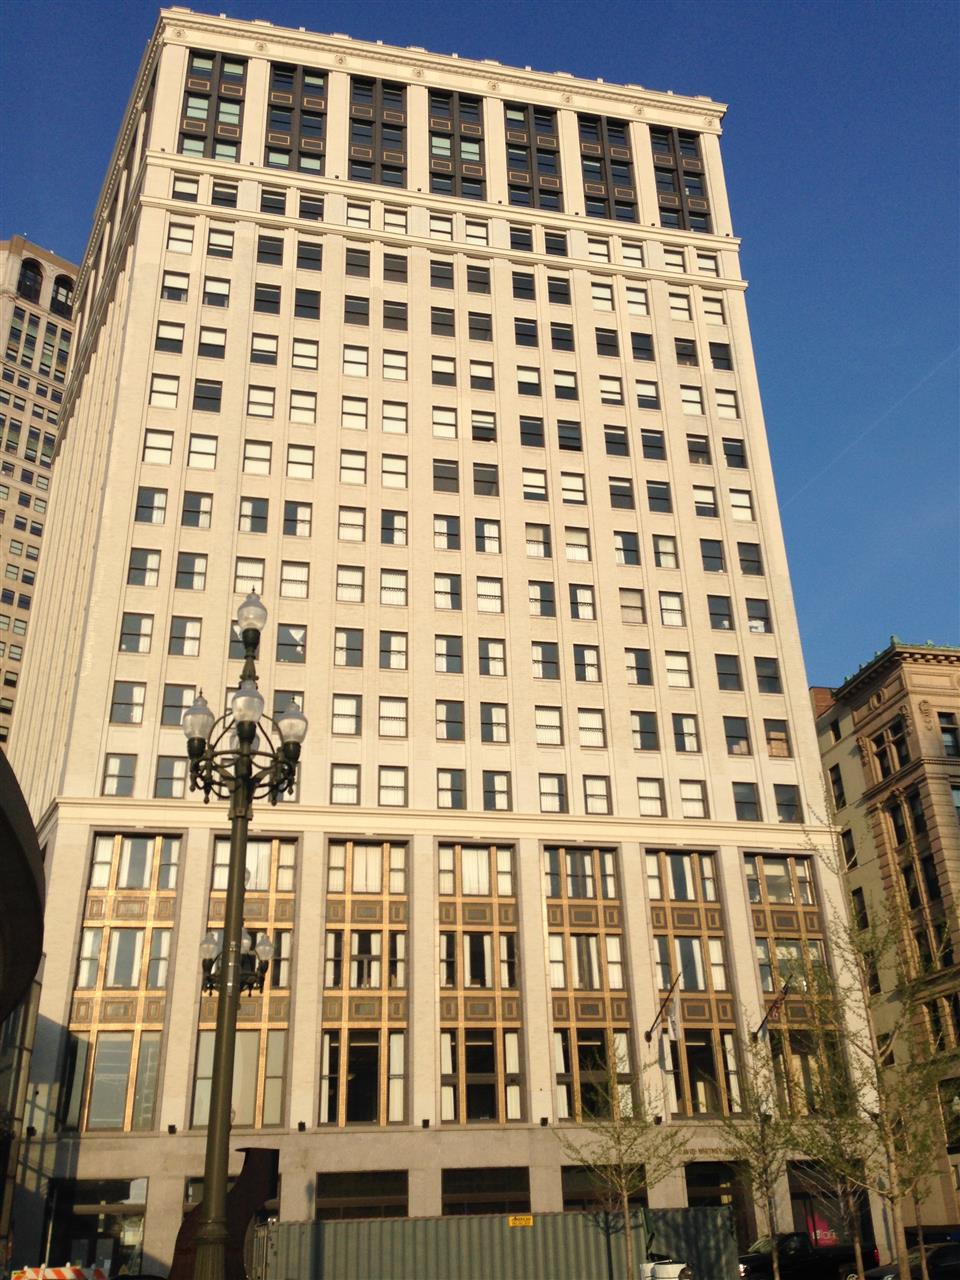 The David Whitney Building is a historic class-A skyscraper located on the northern edge of Downtown Detroit, within the Grand Circus Park Historic District ~ Detroit, Michigan #LeadingRElocal #Detroit #Michigan